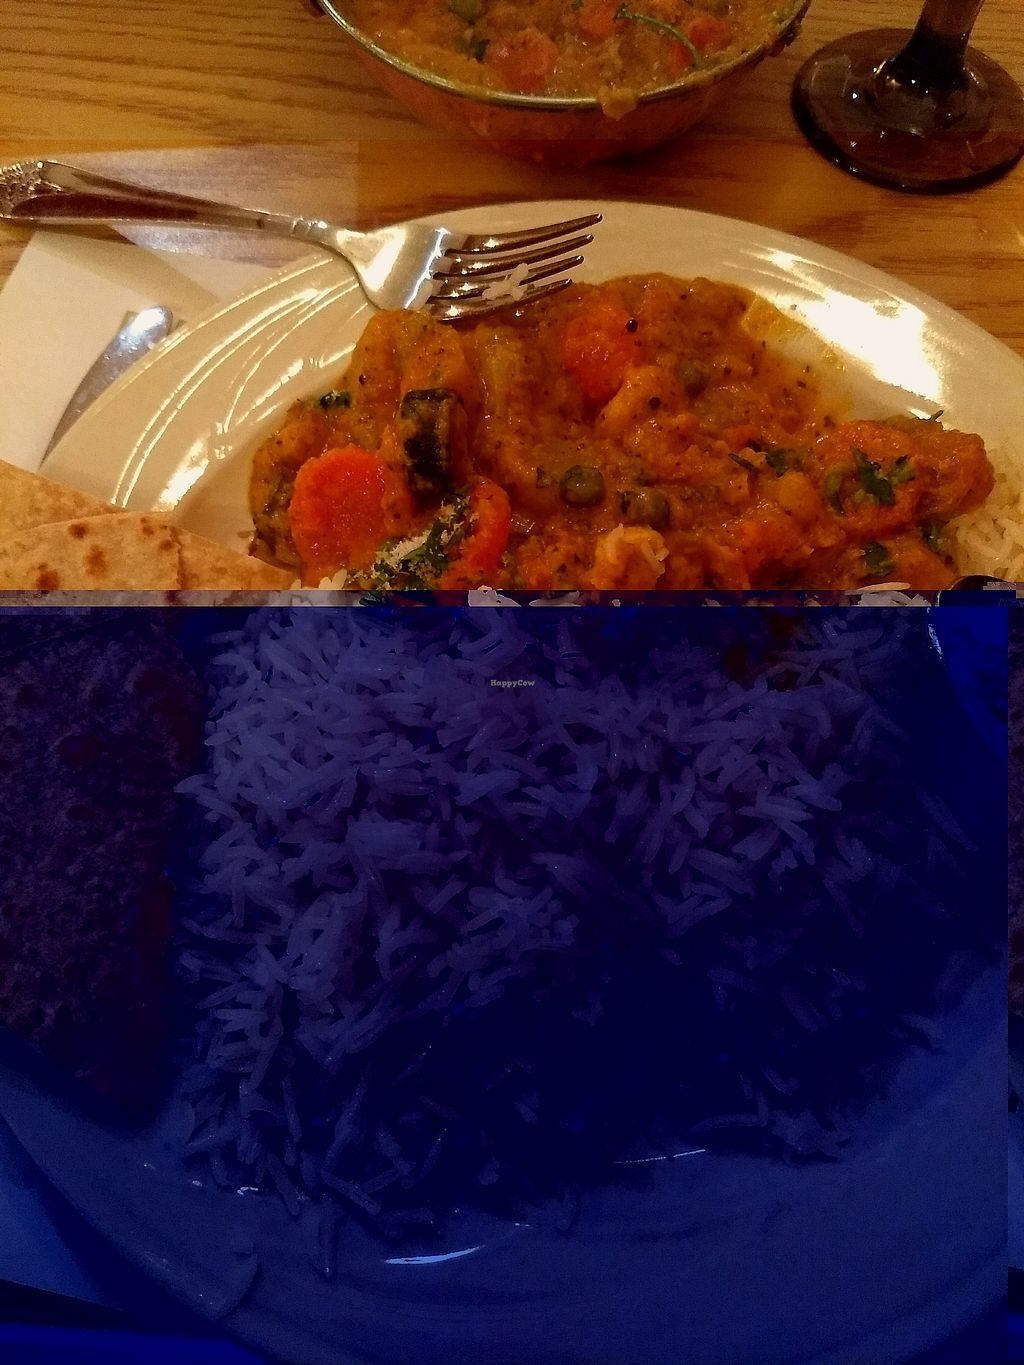 """Photo of Taste of India  by <a href=""""/members/profile/Ty%21"""">Ty!</a> <br/>Delicious <br/> February 24, 2018  - <a href='/contact/abuse/image/36412/363028'>Report</a>"""